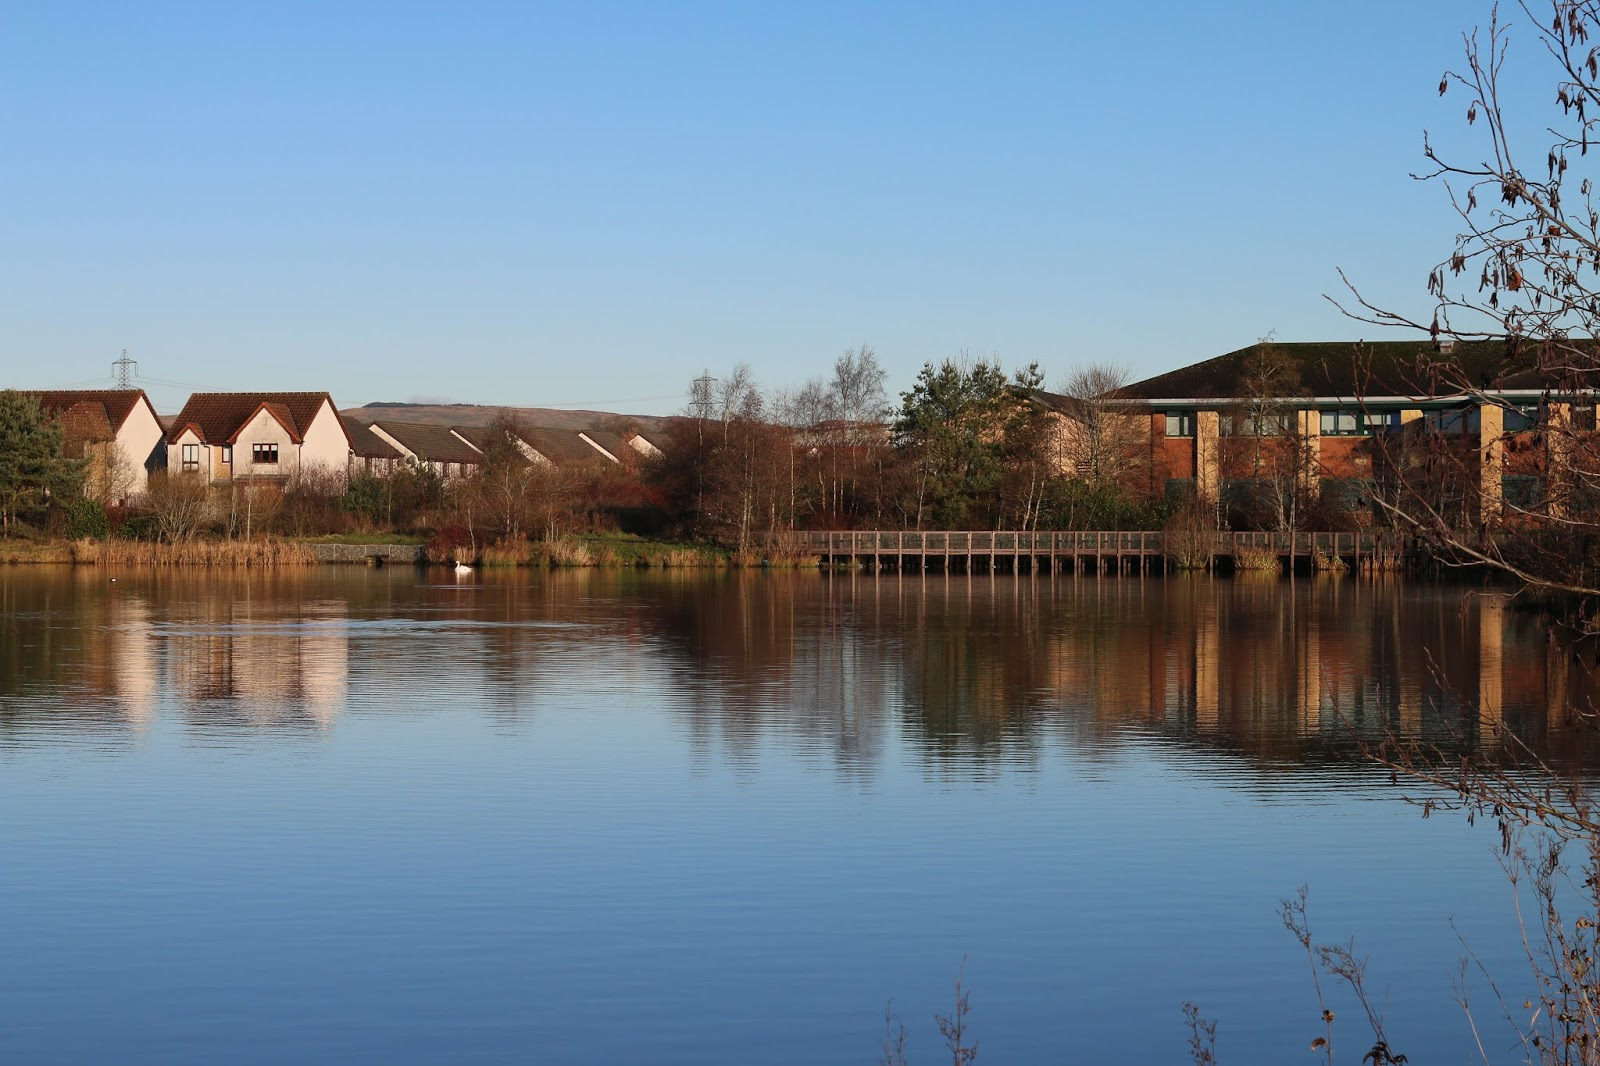 a landscape photo of broadwood lock with blue skies and deep blue water with houses in the background